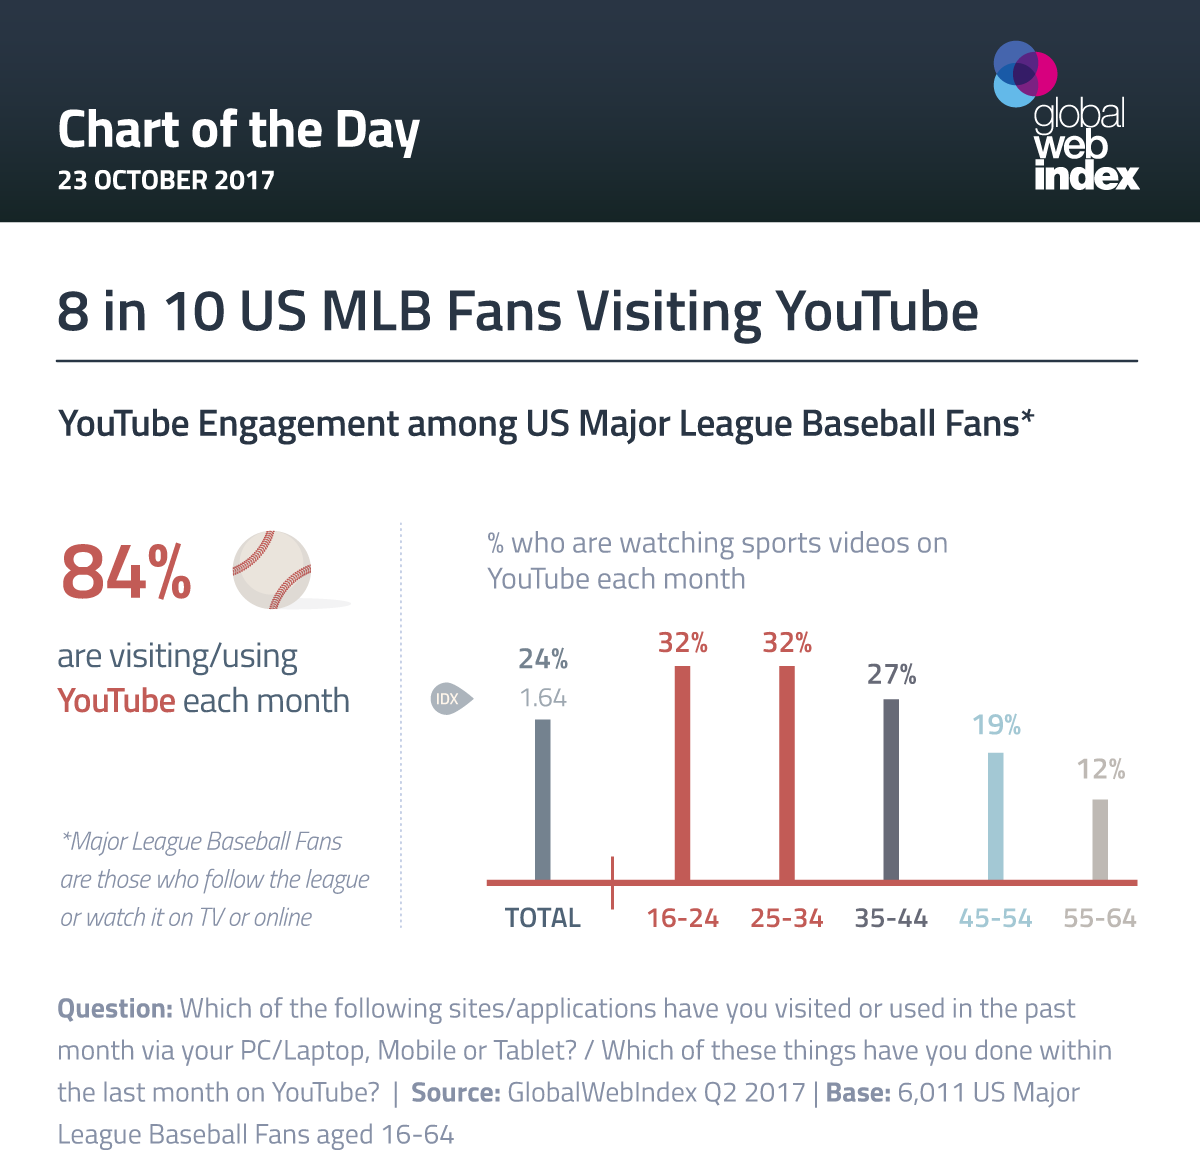 US MLB Fans' Engagement with YouTube